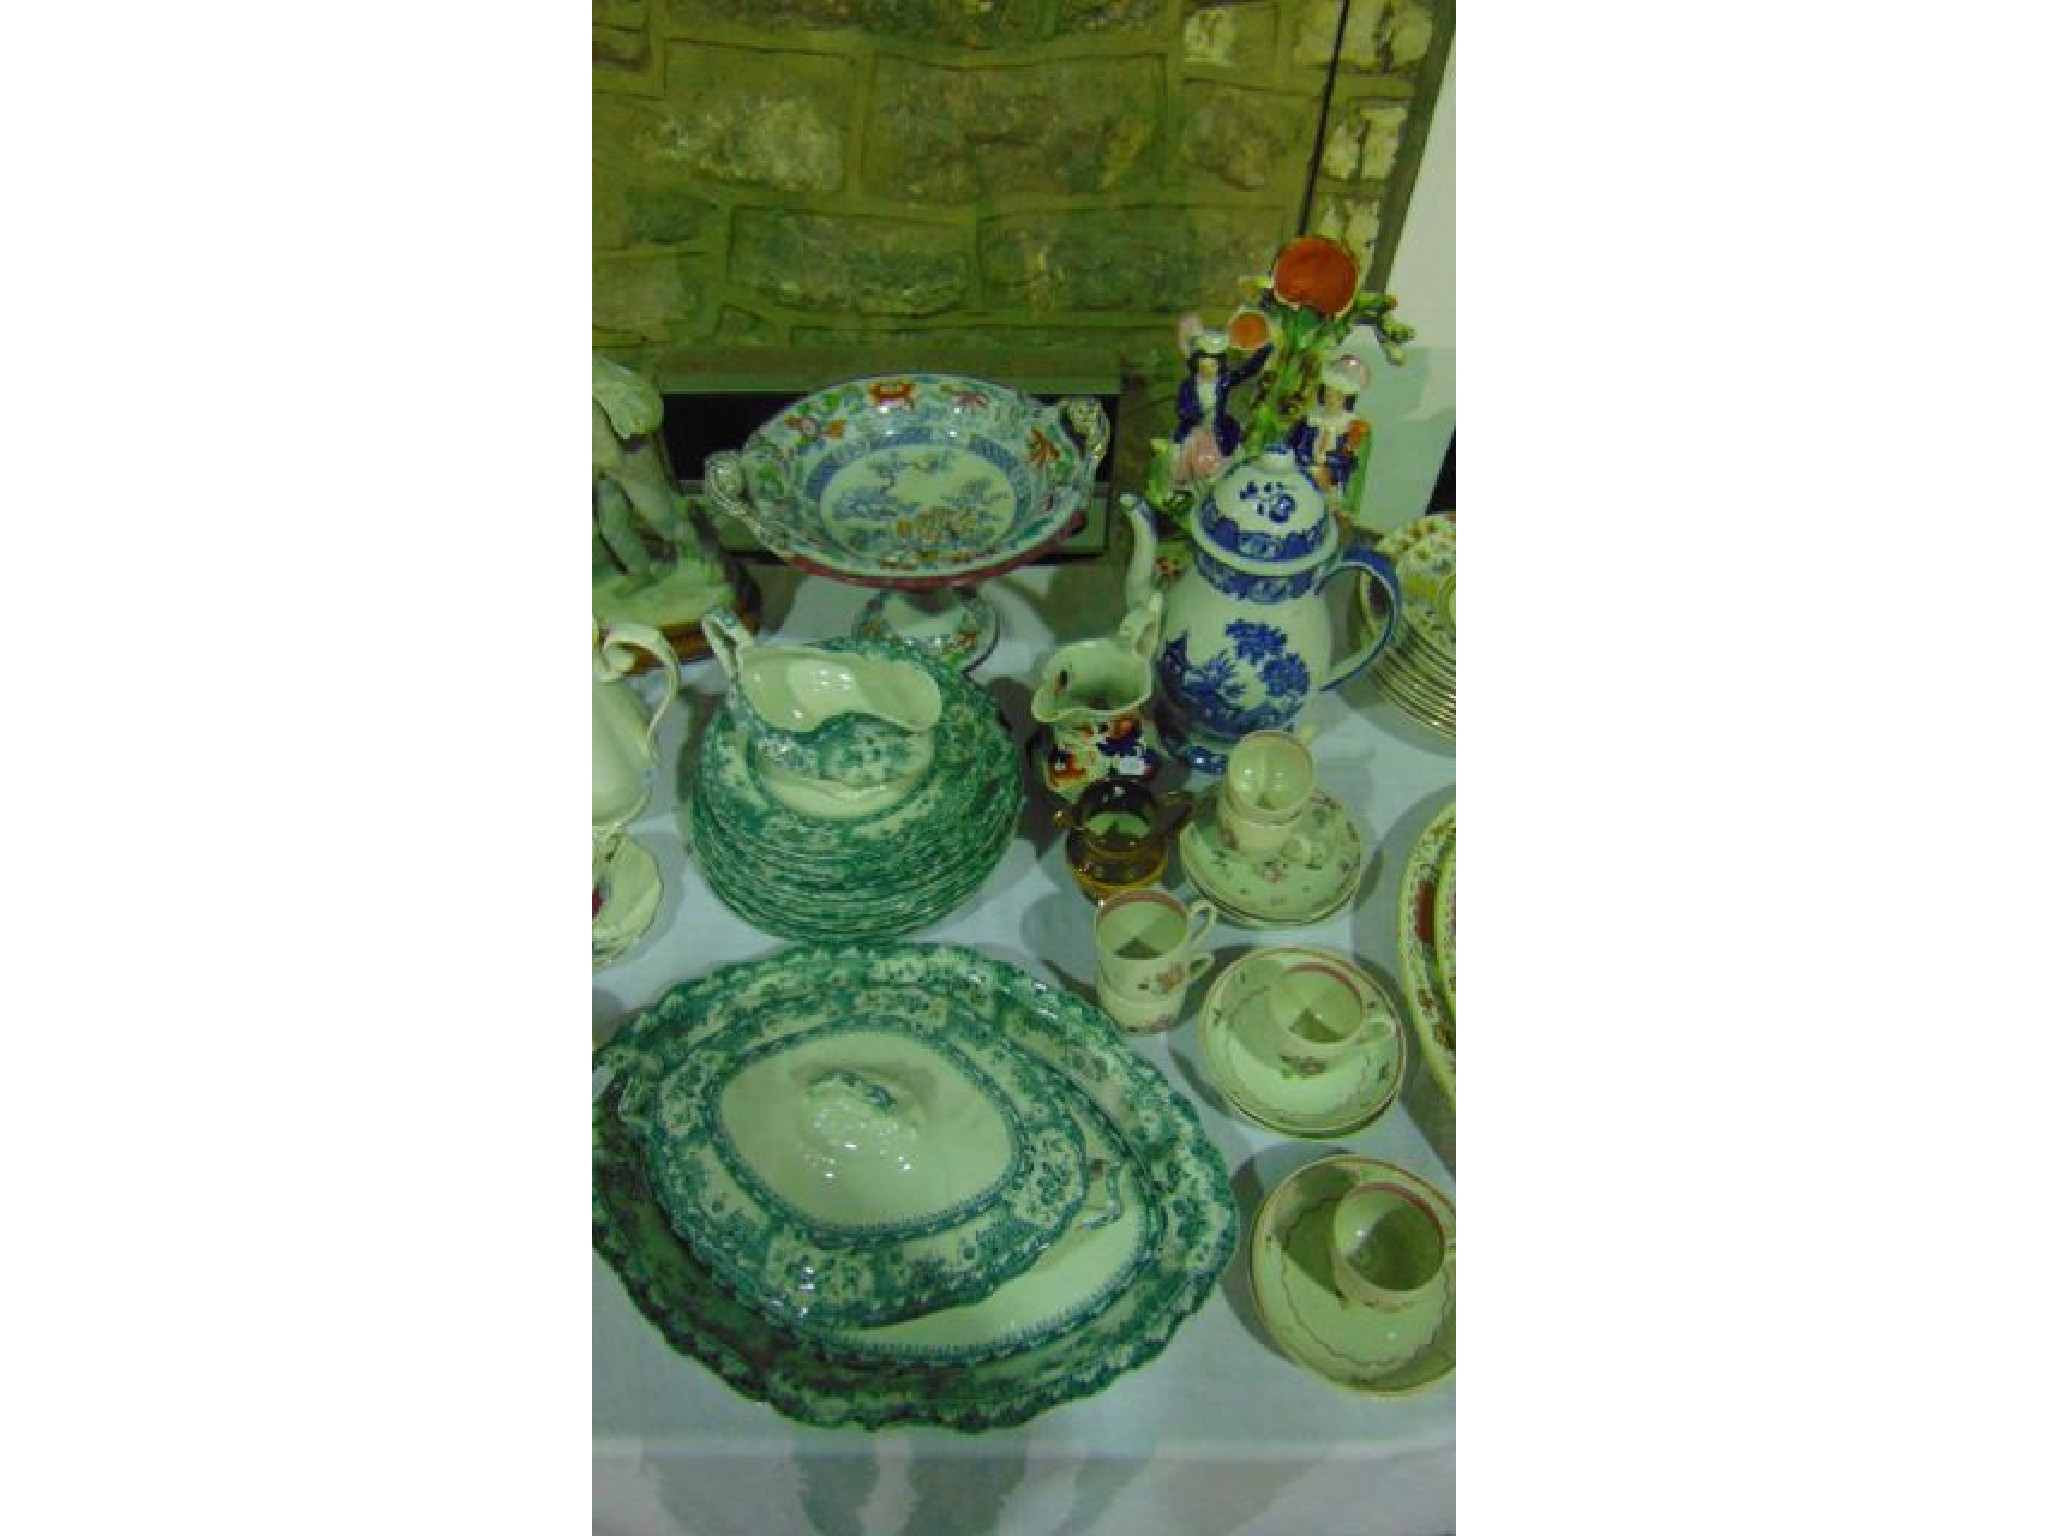 A collection of 19th century ceramics including